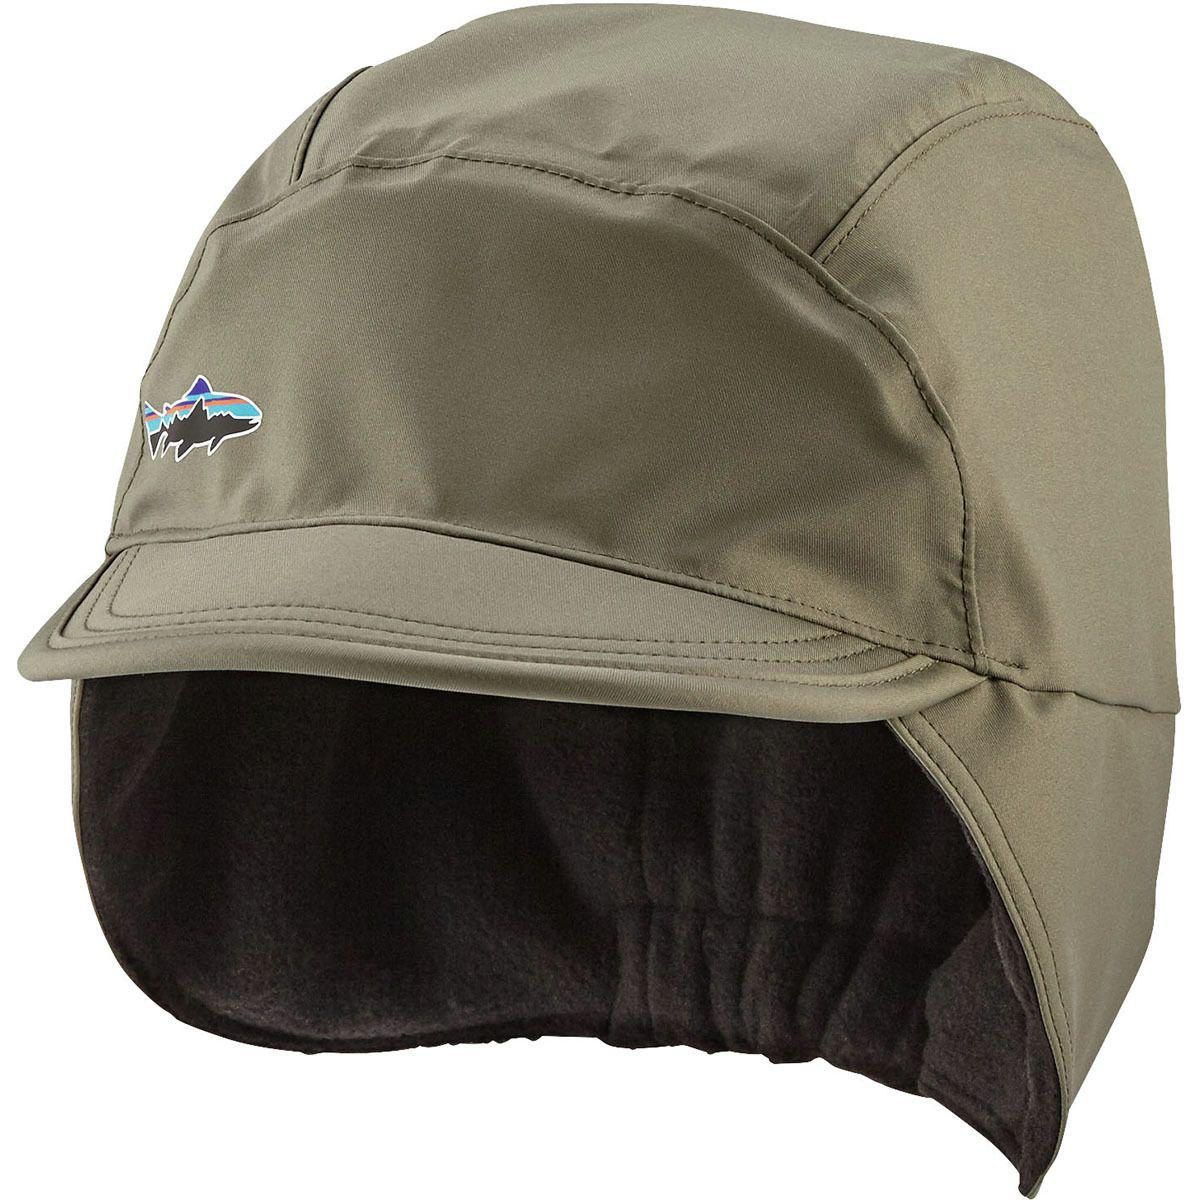 b93f2dacc61 Lyst - Patagonia Water Resistant Shelled Synchilla Cap in Green for Men